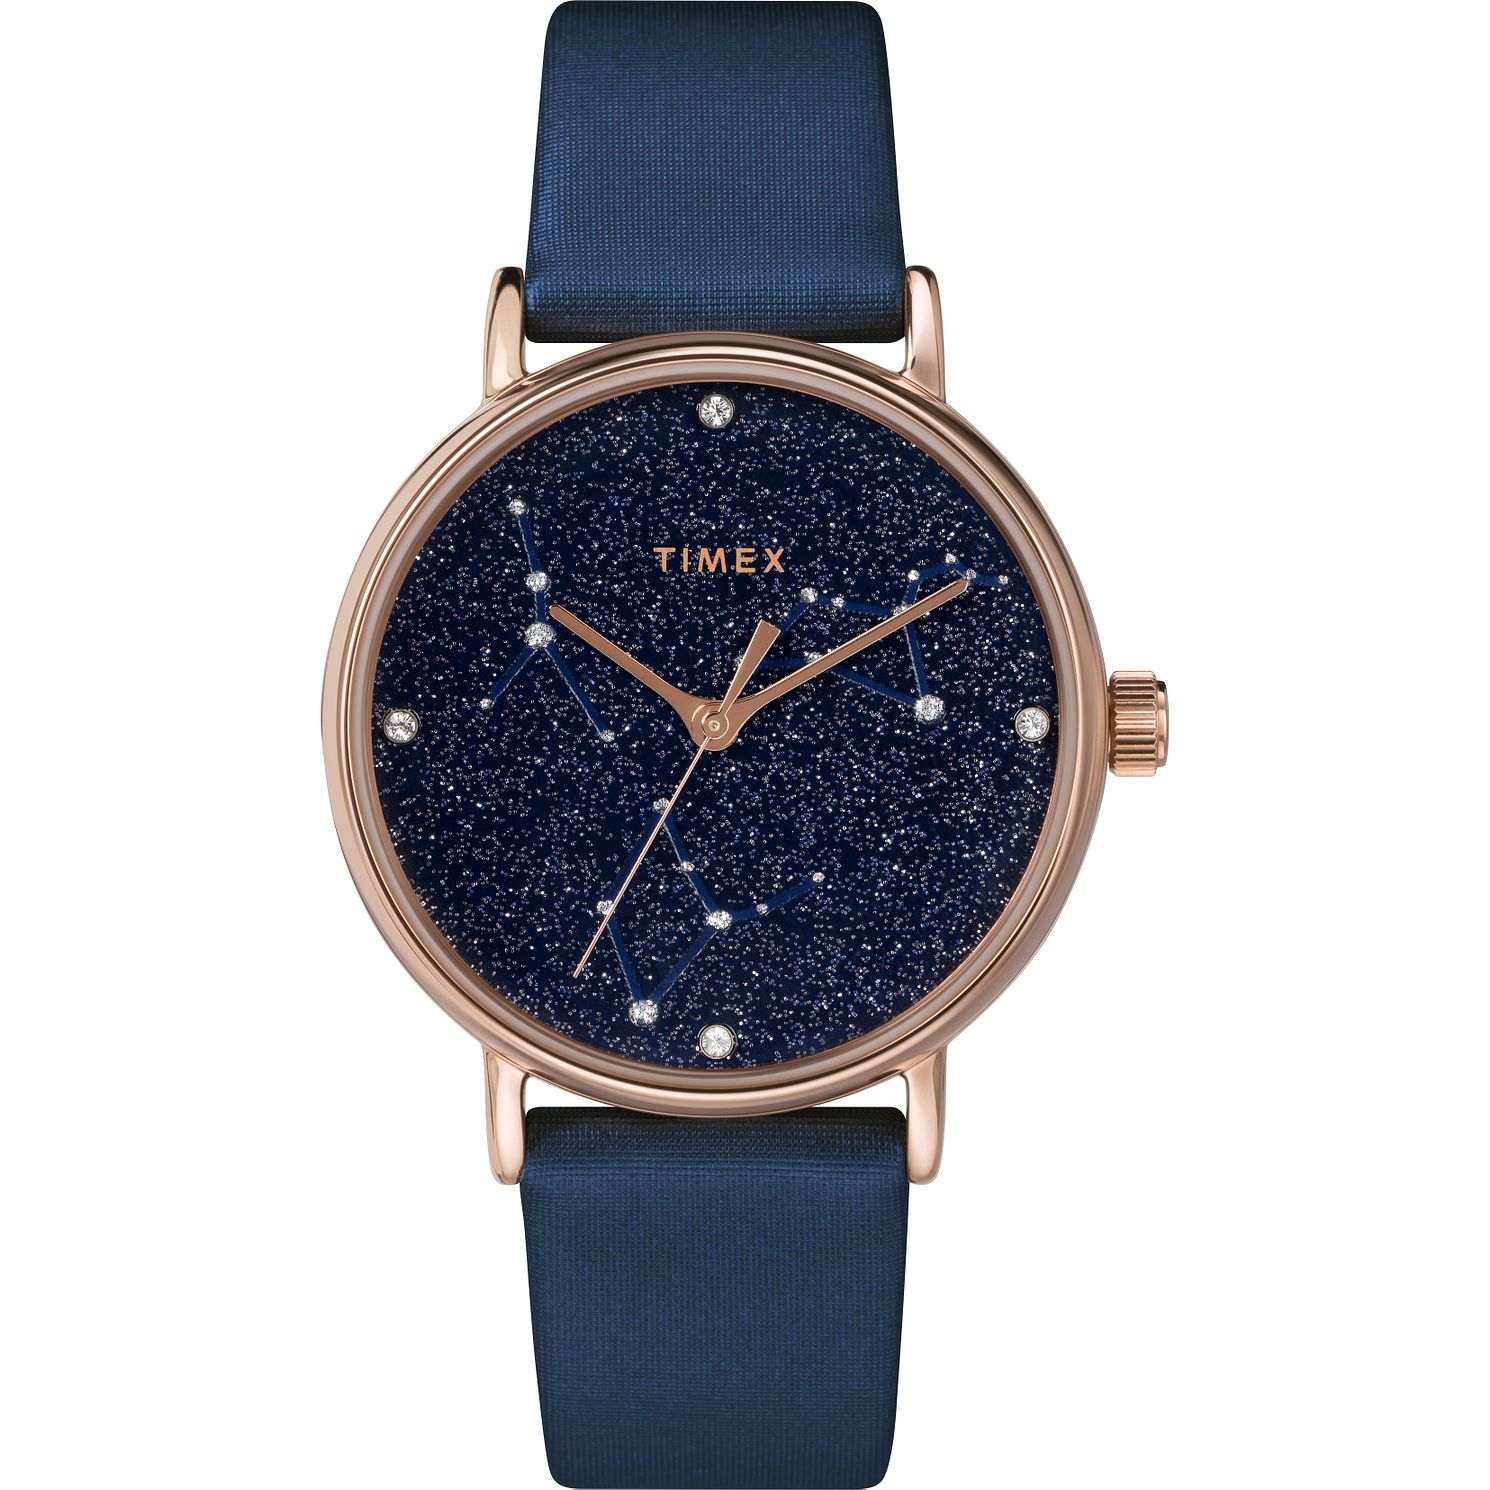 Timex Indiglo Ladies' Dark Blue Leather Strap Watch - Product number 4514467